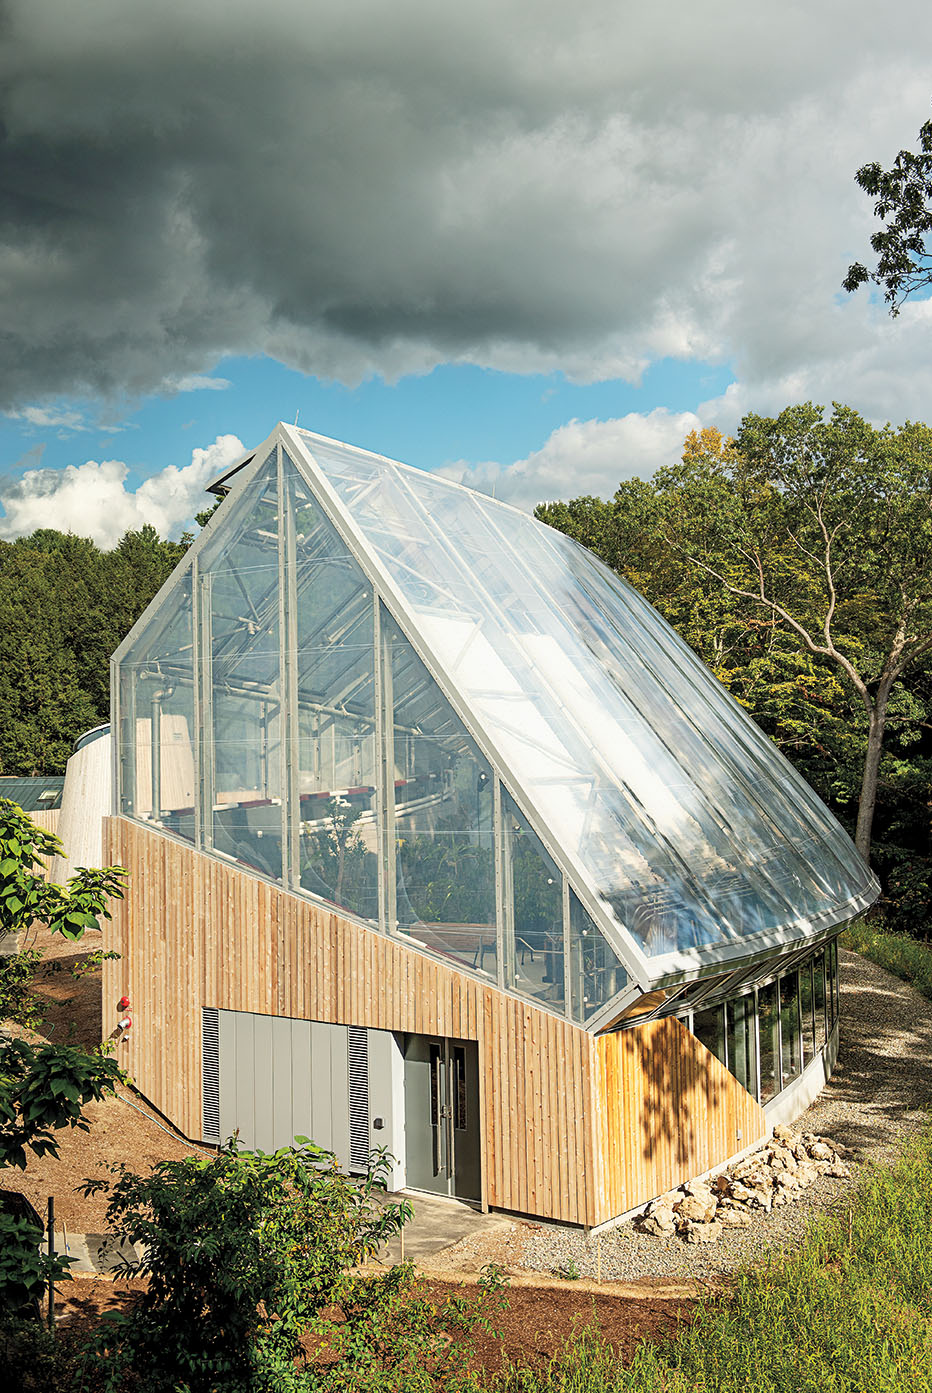 A photo shows the exterior of the new conservatory.